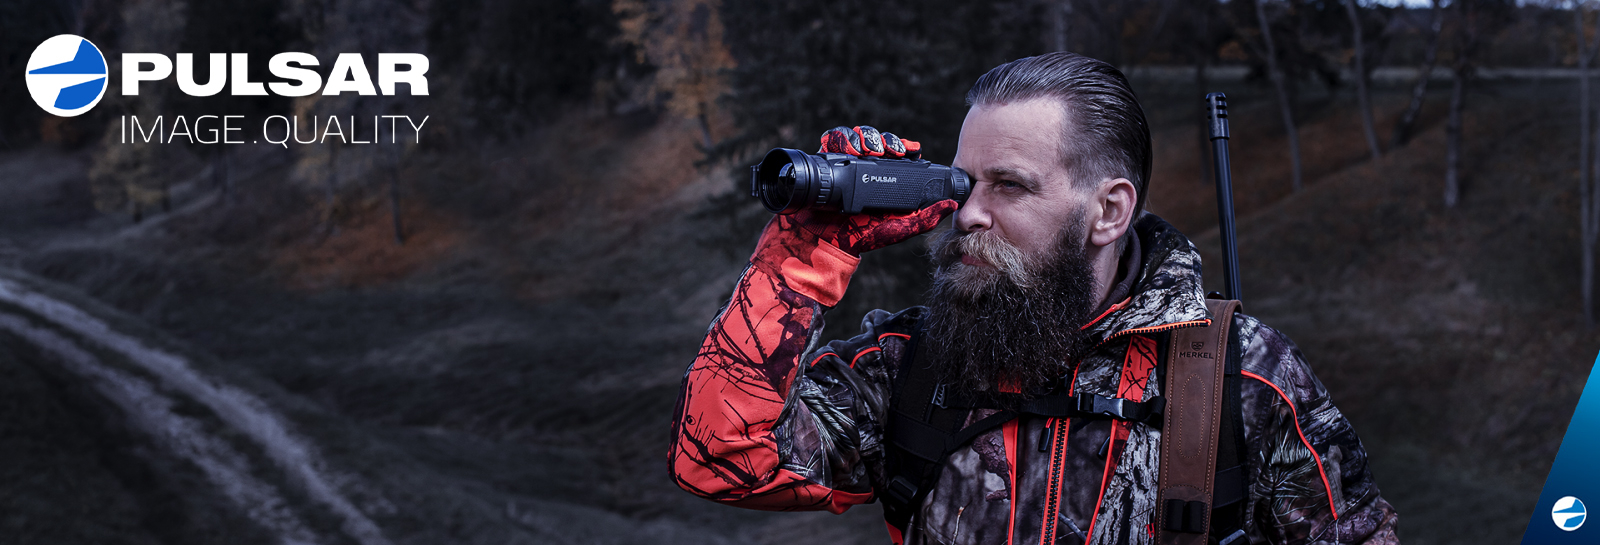 Helion 2 XQ Thermal Imaging Monocular